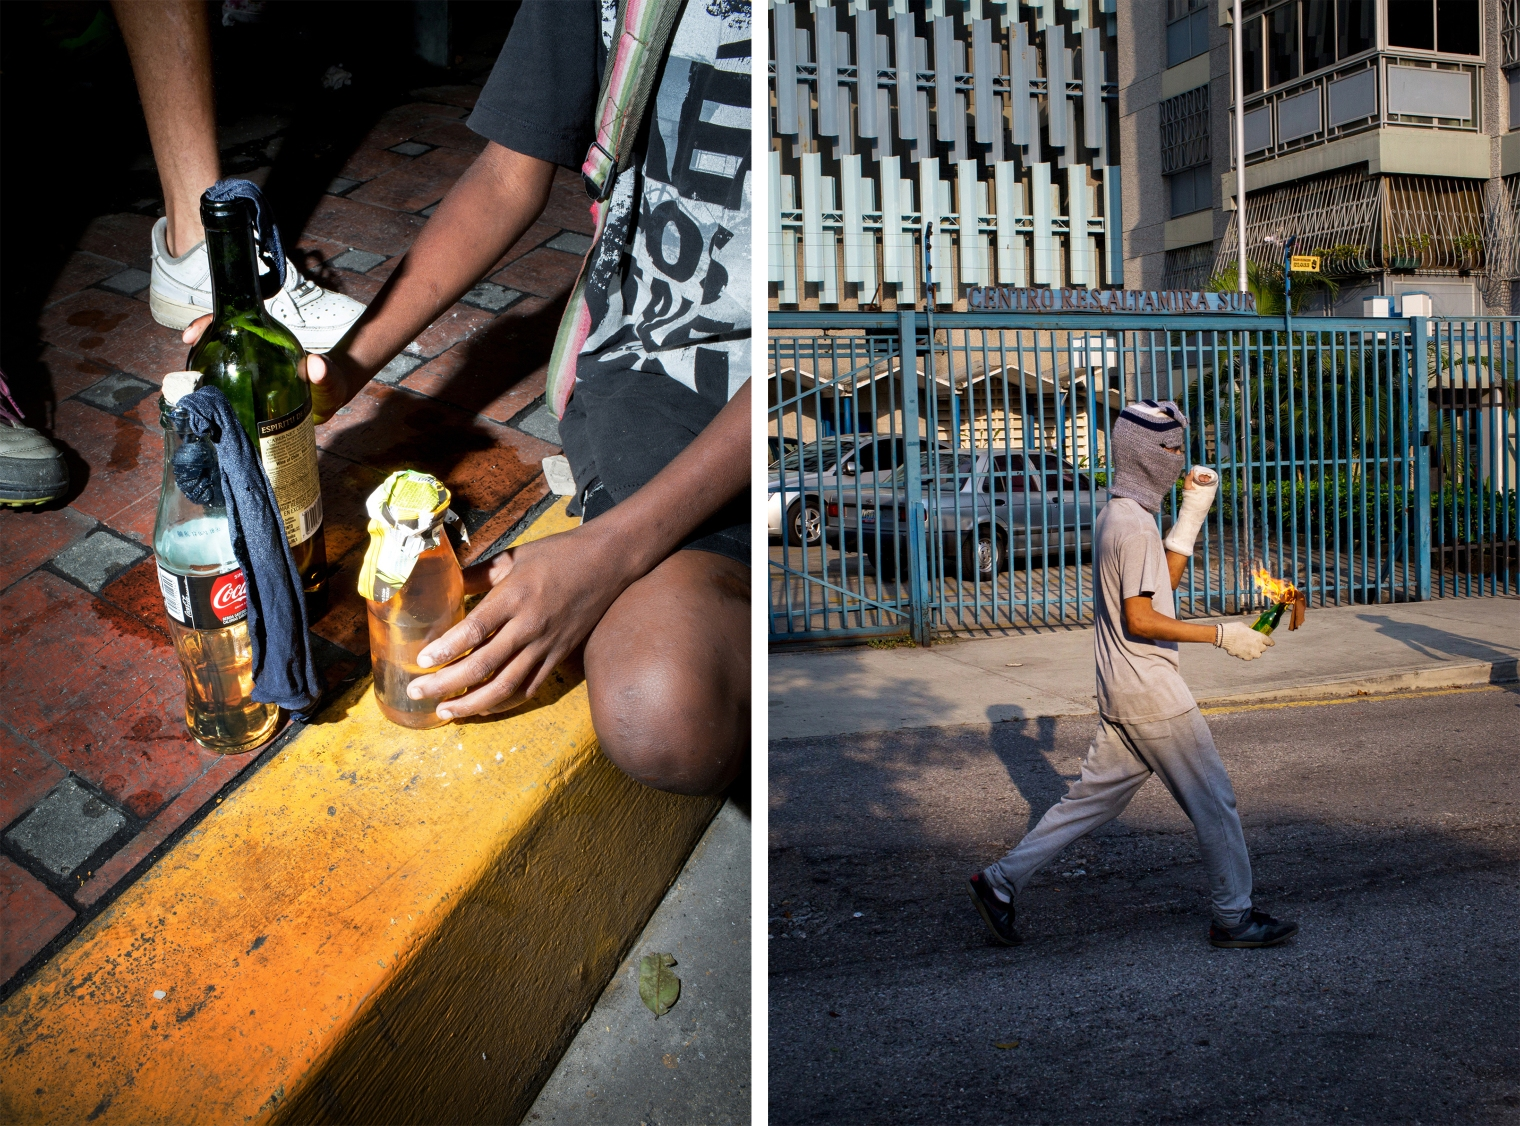 Left: A boy prepares Molotov cocktails during a quiet afternoon in the Chacao section of Caracas on July 31. Right: A youth holds a Molotov cocktail in eastern Caracas.